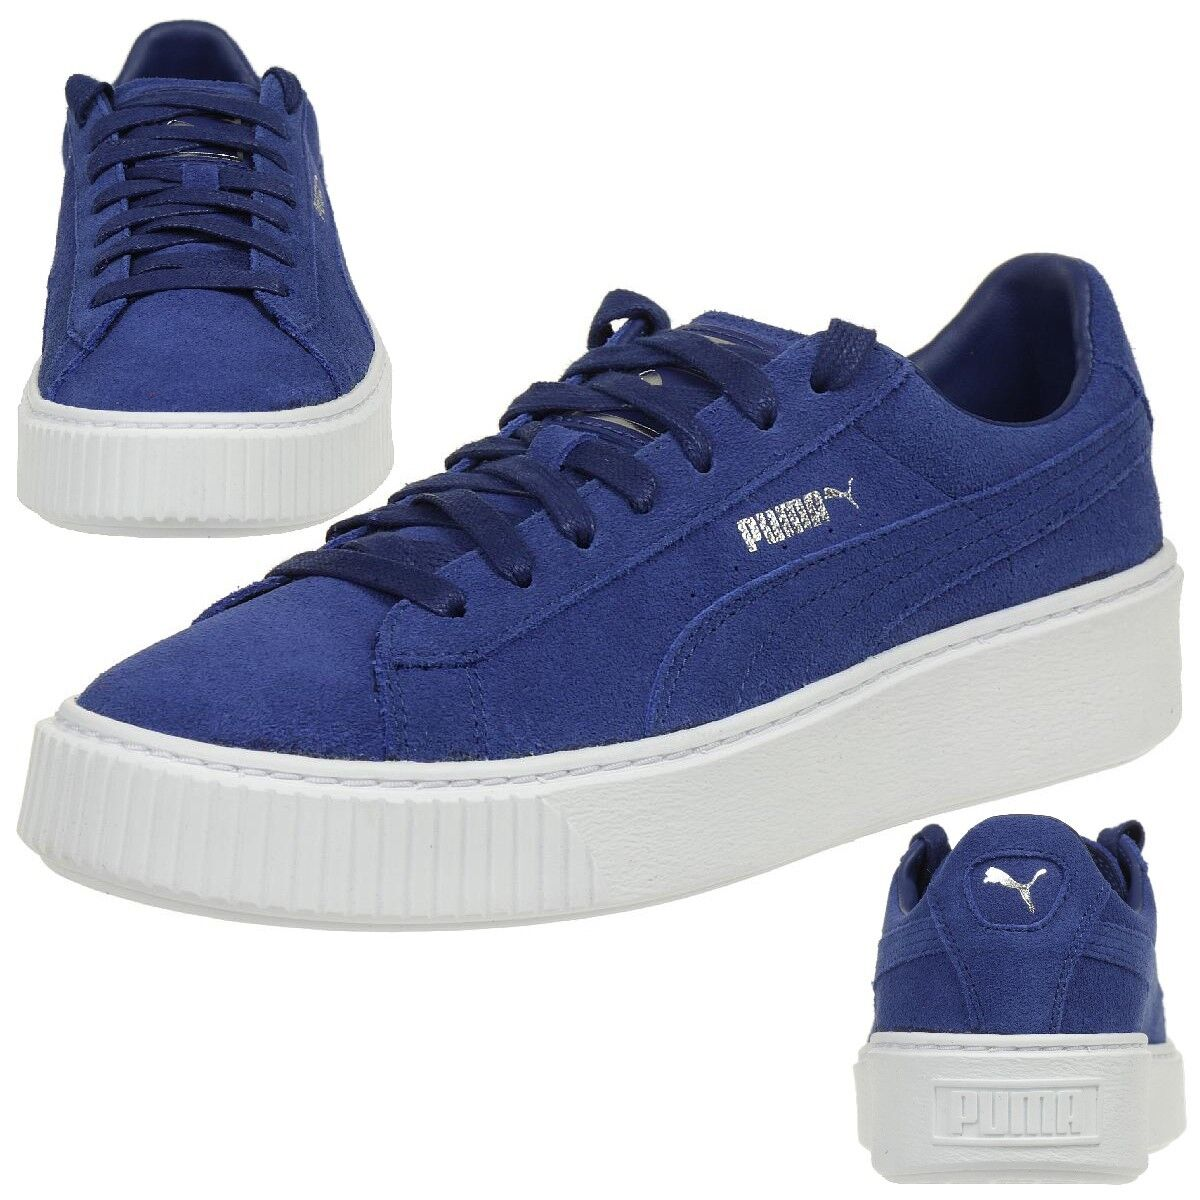 Puma Suede Platform Ladies Sneaker shoes Leather bluee